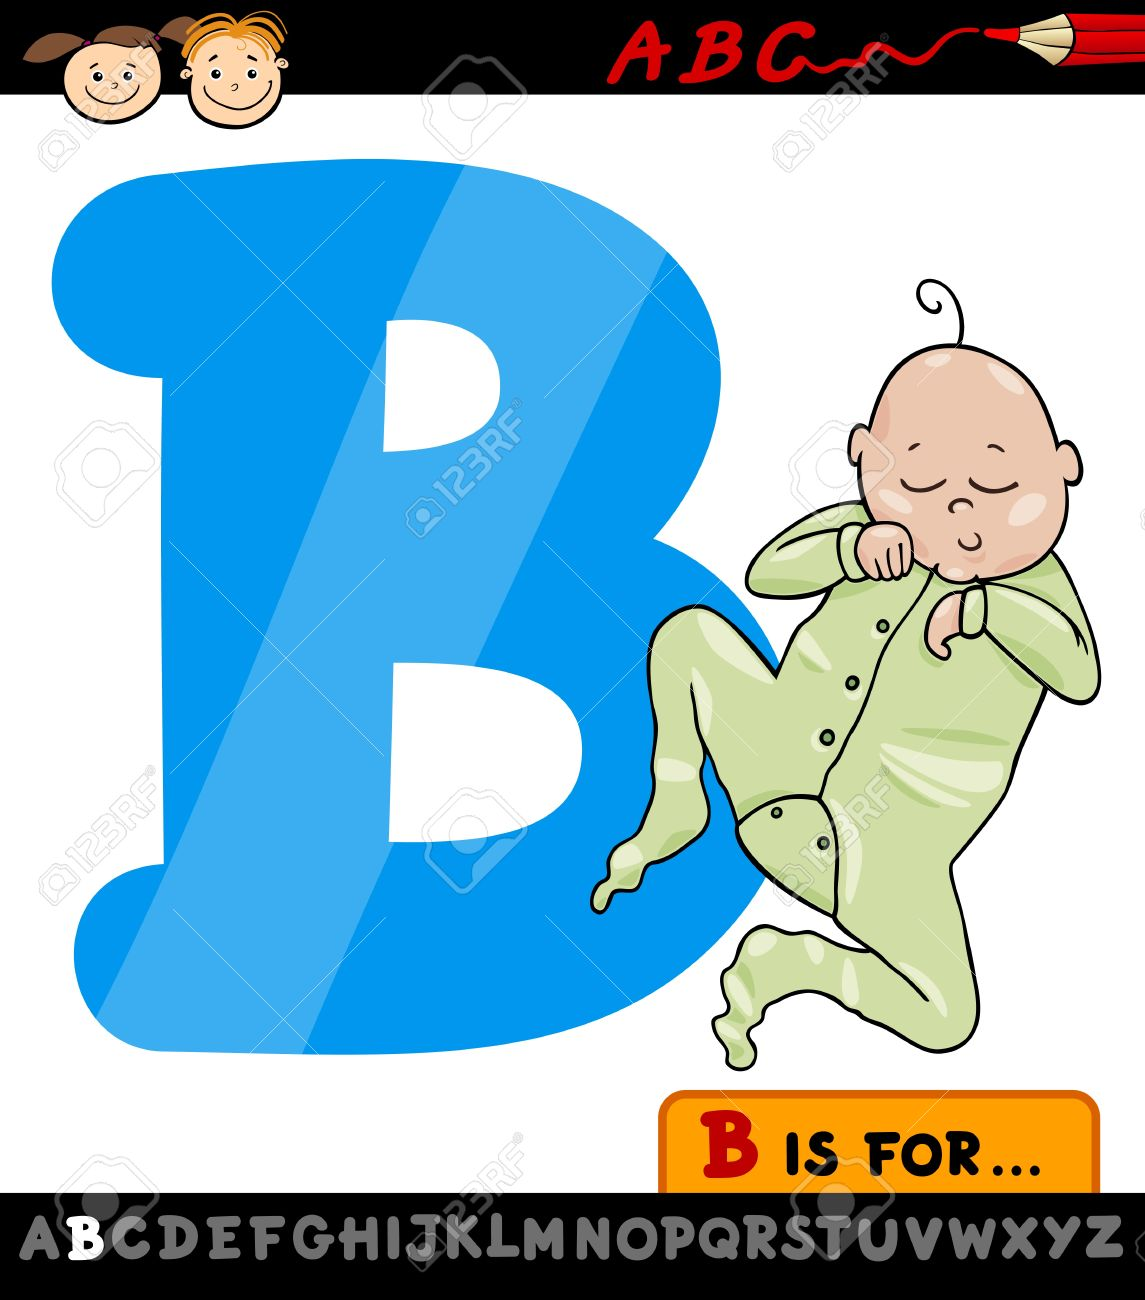 Cartoon Illustration of Capital Letter B from Alphabet with Baby for Children Education Stock Vector - 21295537